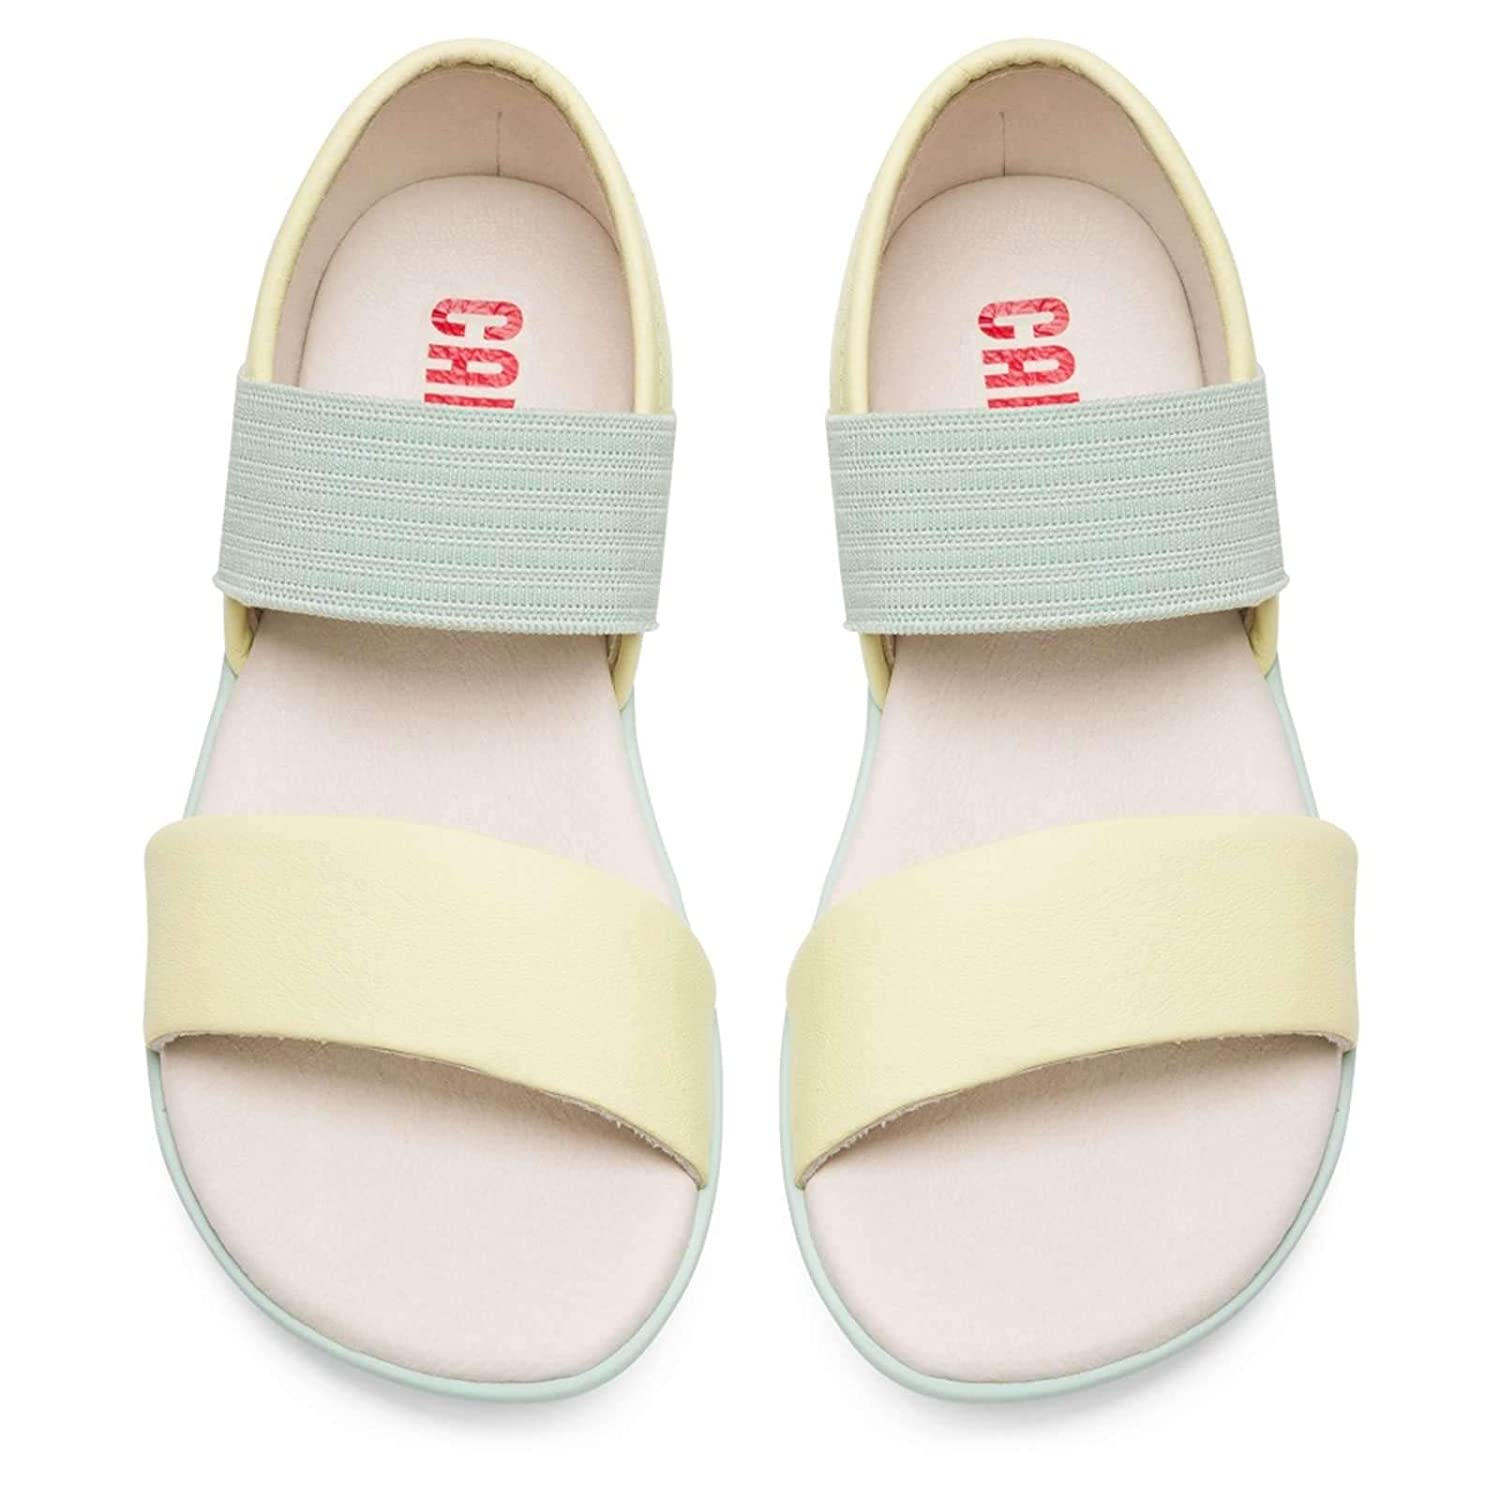 Camper Girls Right Sandals